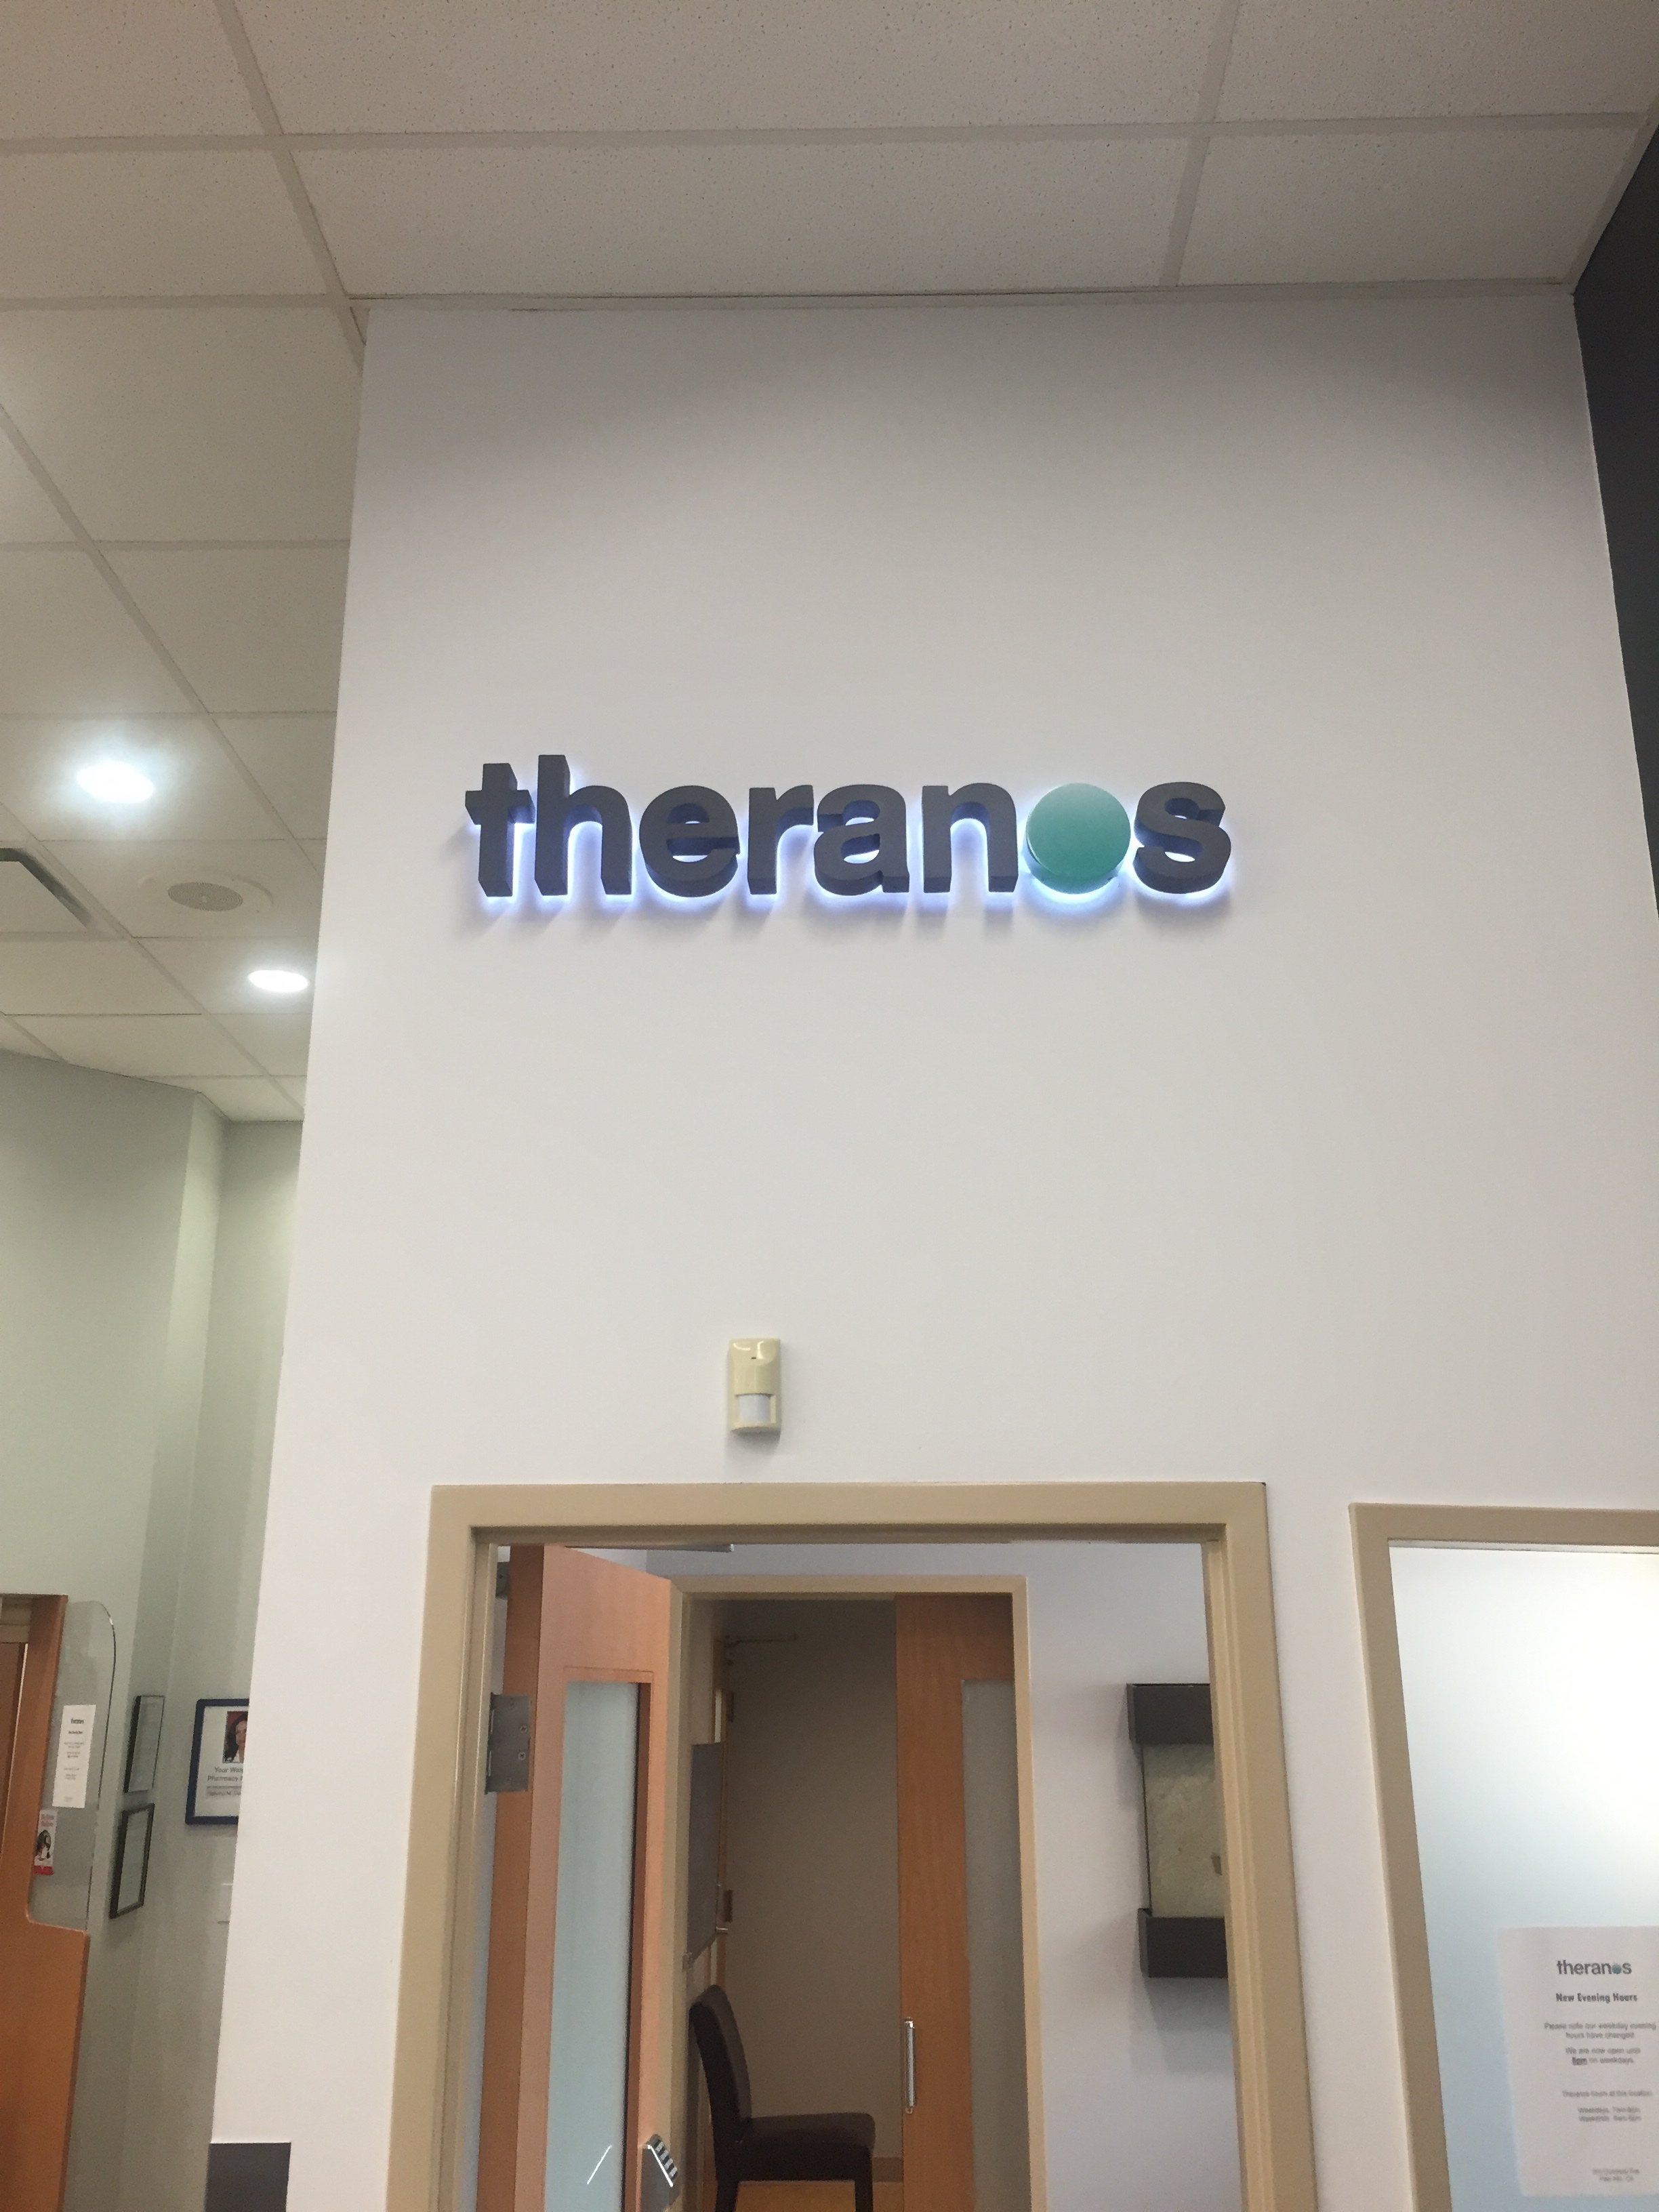 The Theranos store in my local Walgreens, opened Sept 2013